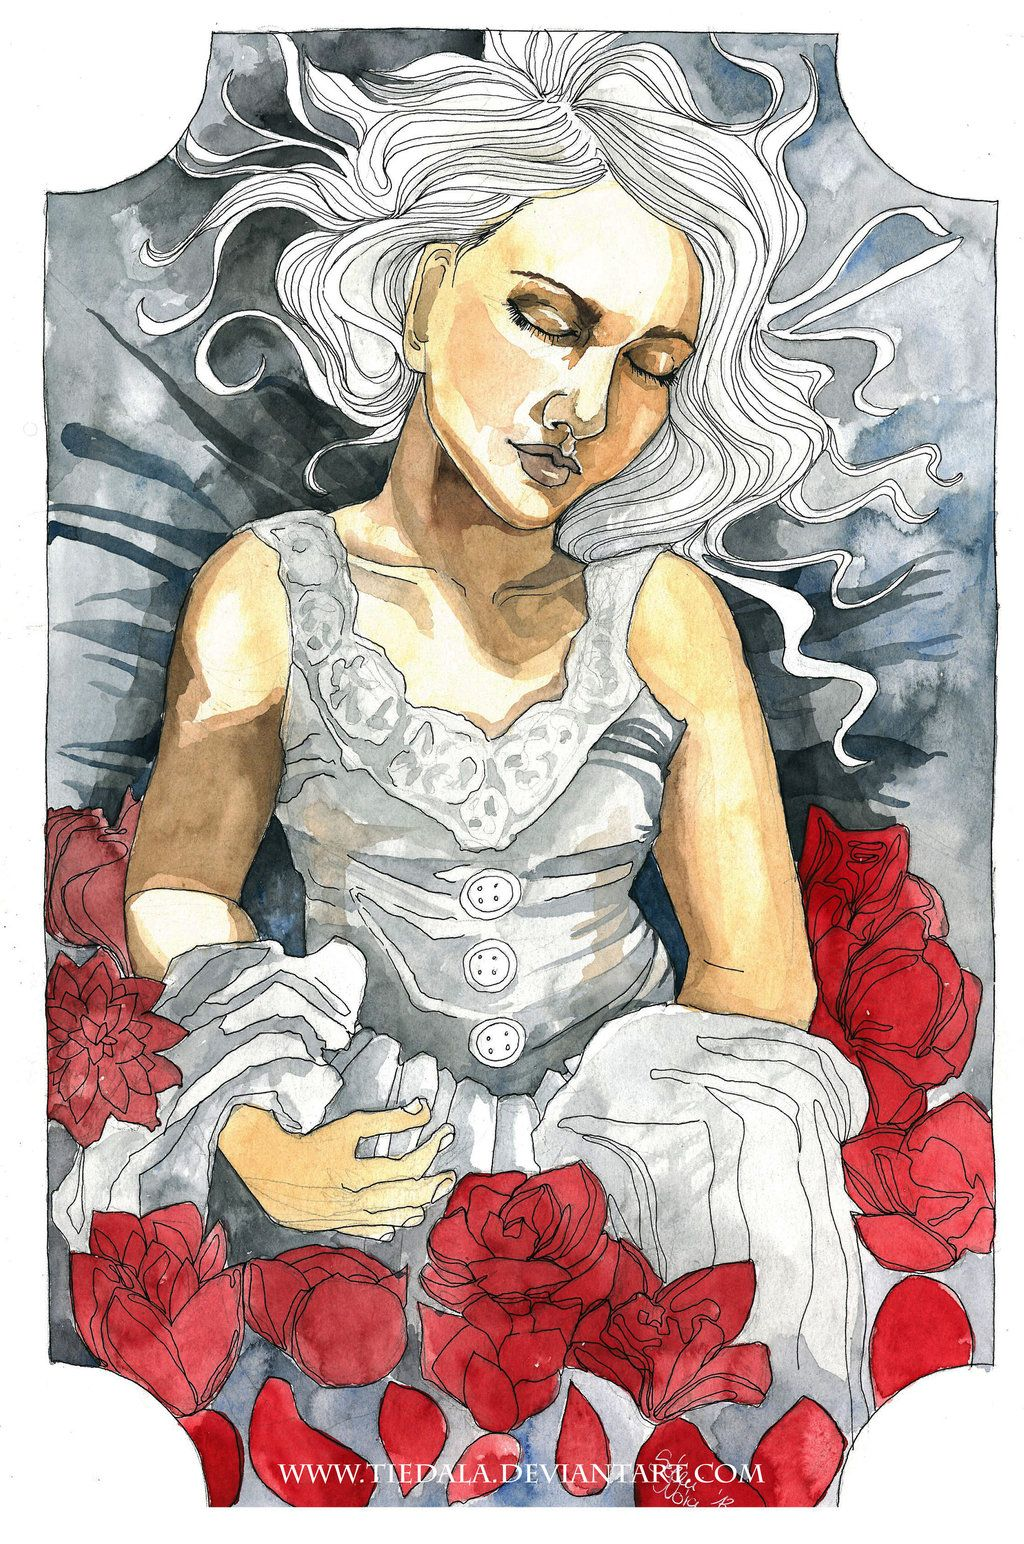 Sleeping beauty by Tiedala.deviantart.com on @deviantART